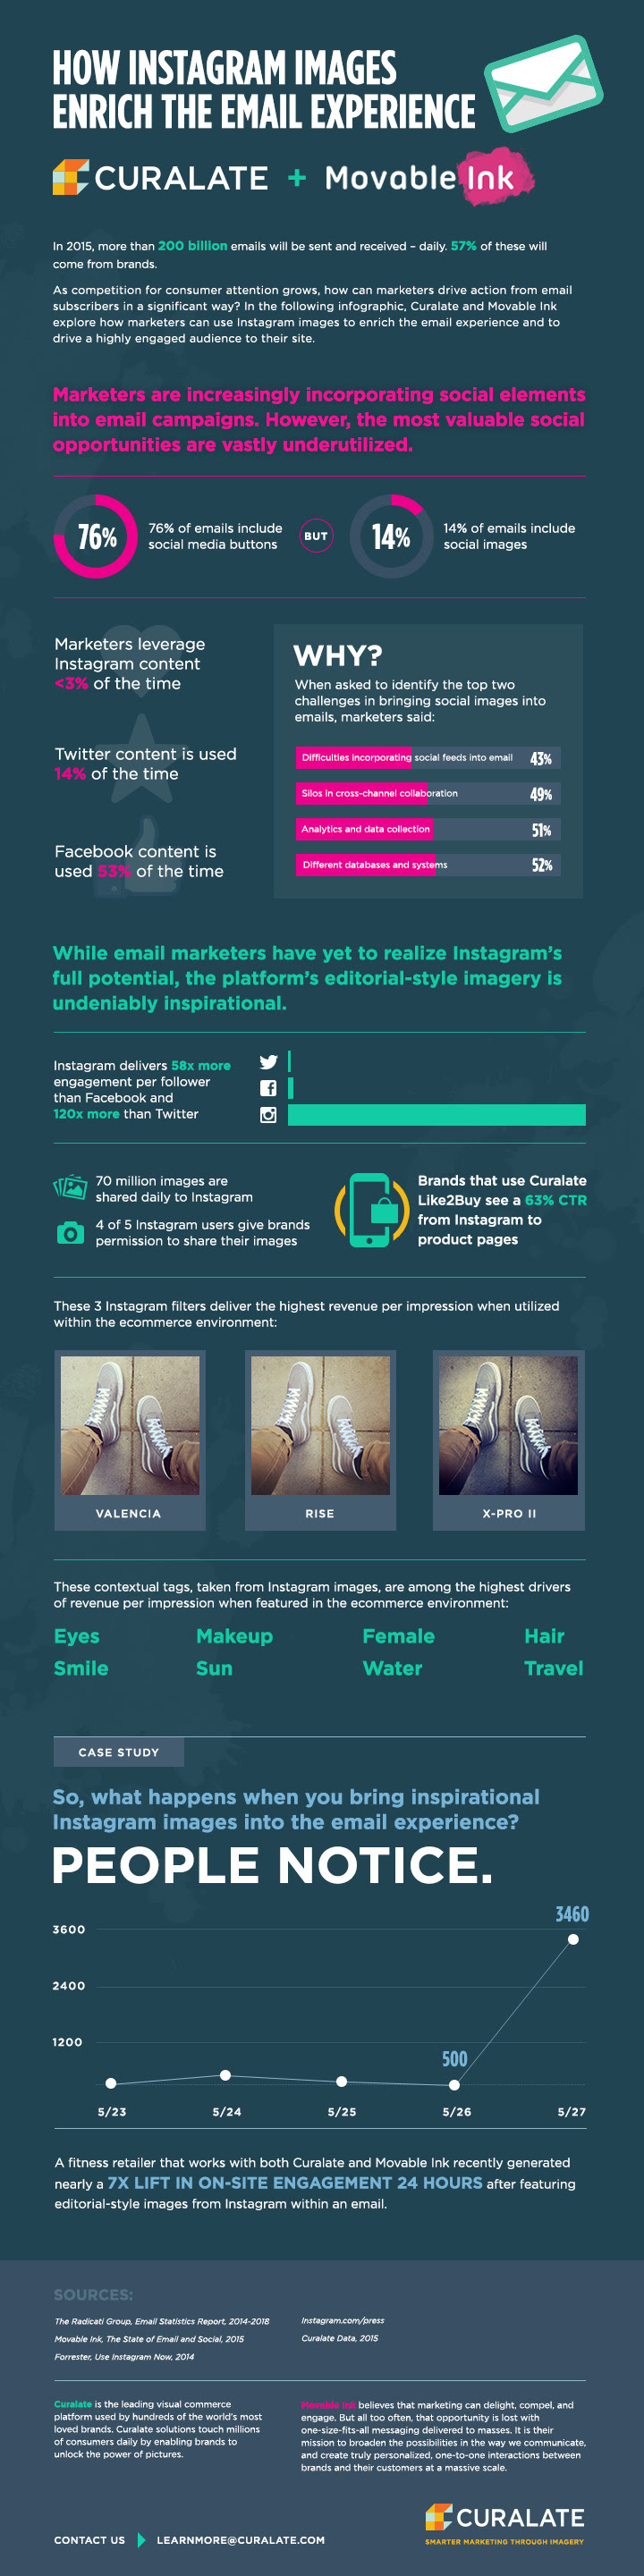 How Instagram Images Enrich the Email Experience - #infographic